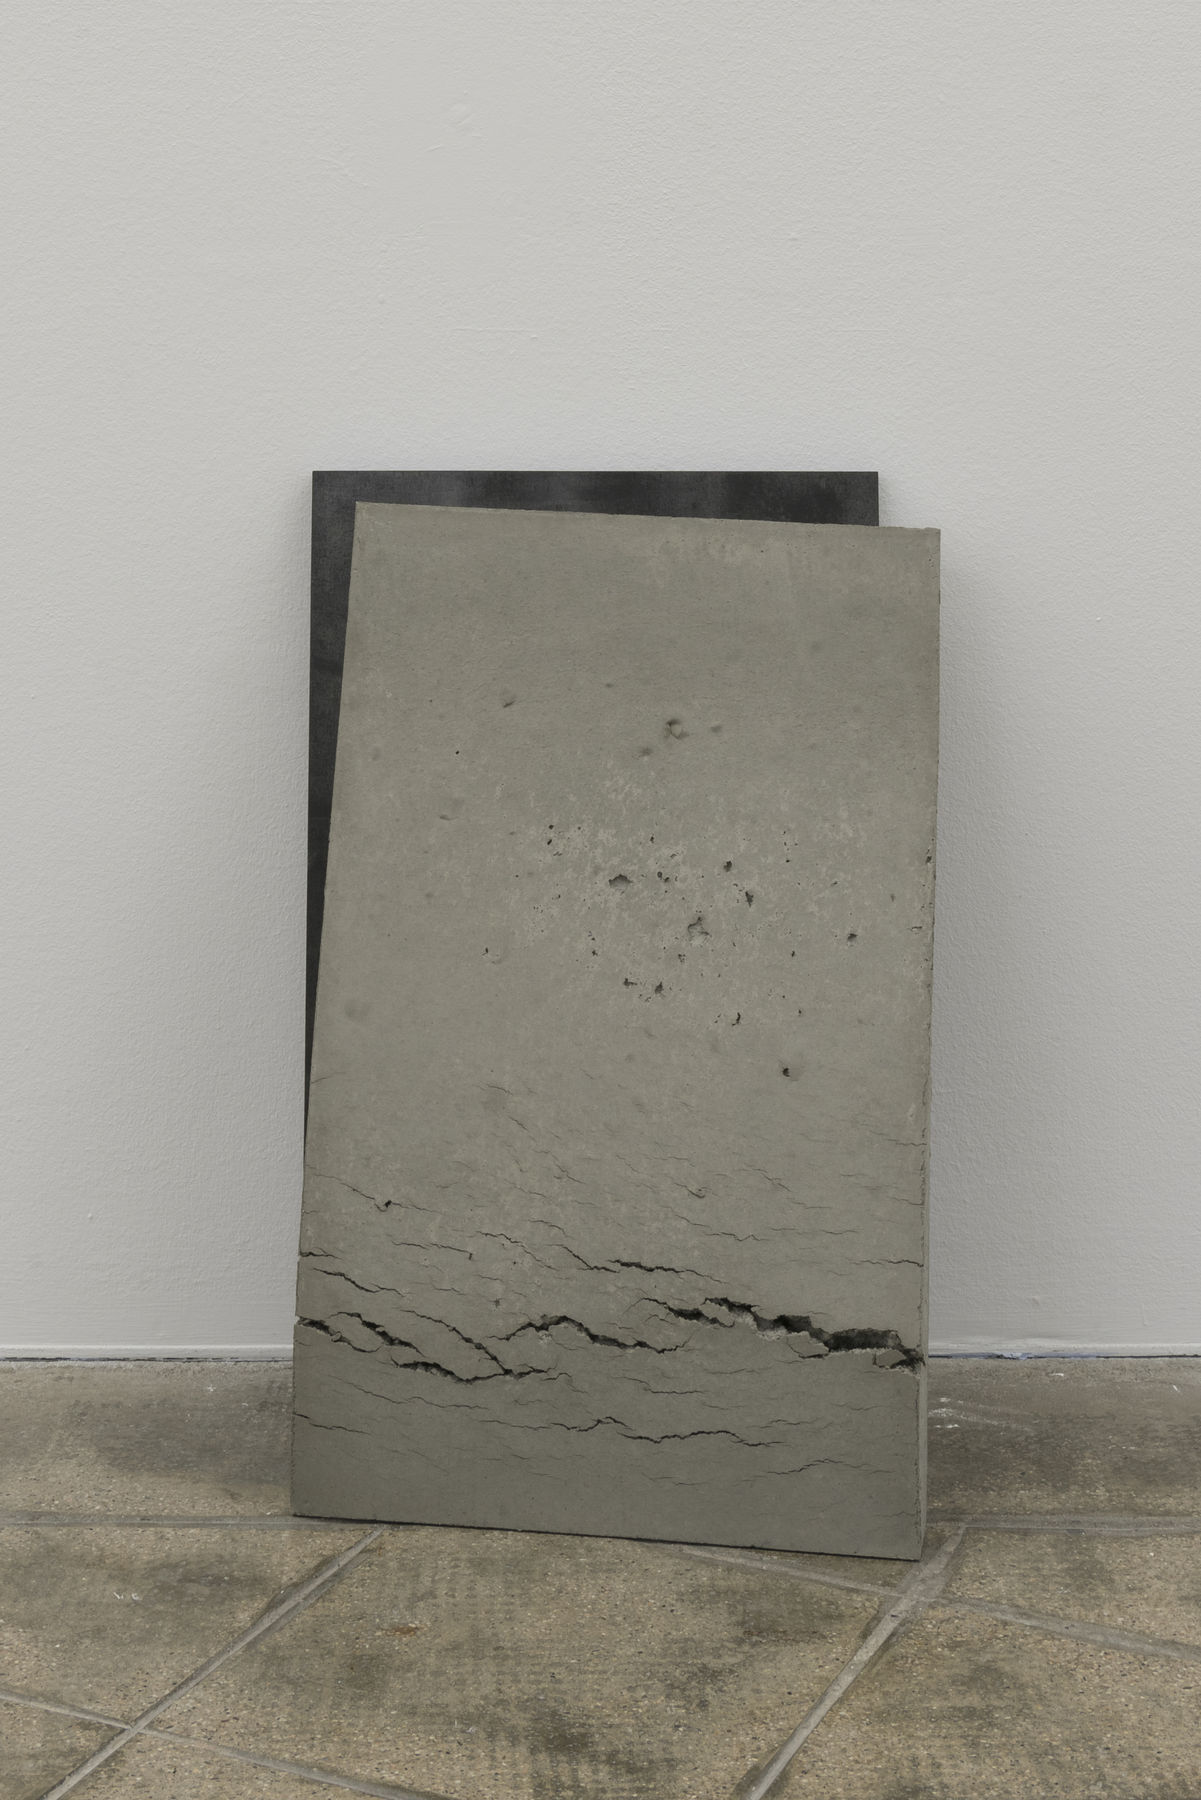 CW_S37_Untitled (Stahl, Beton) (2)